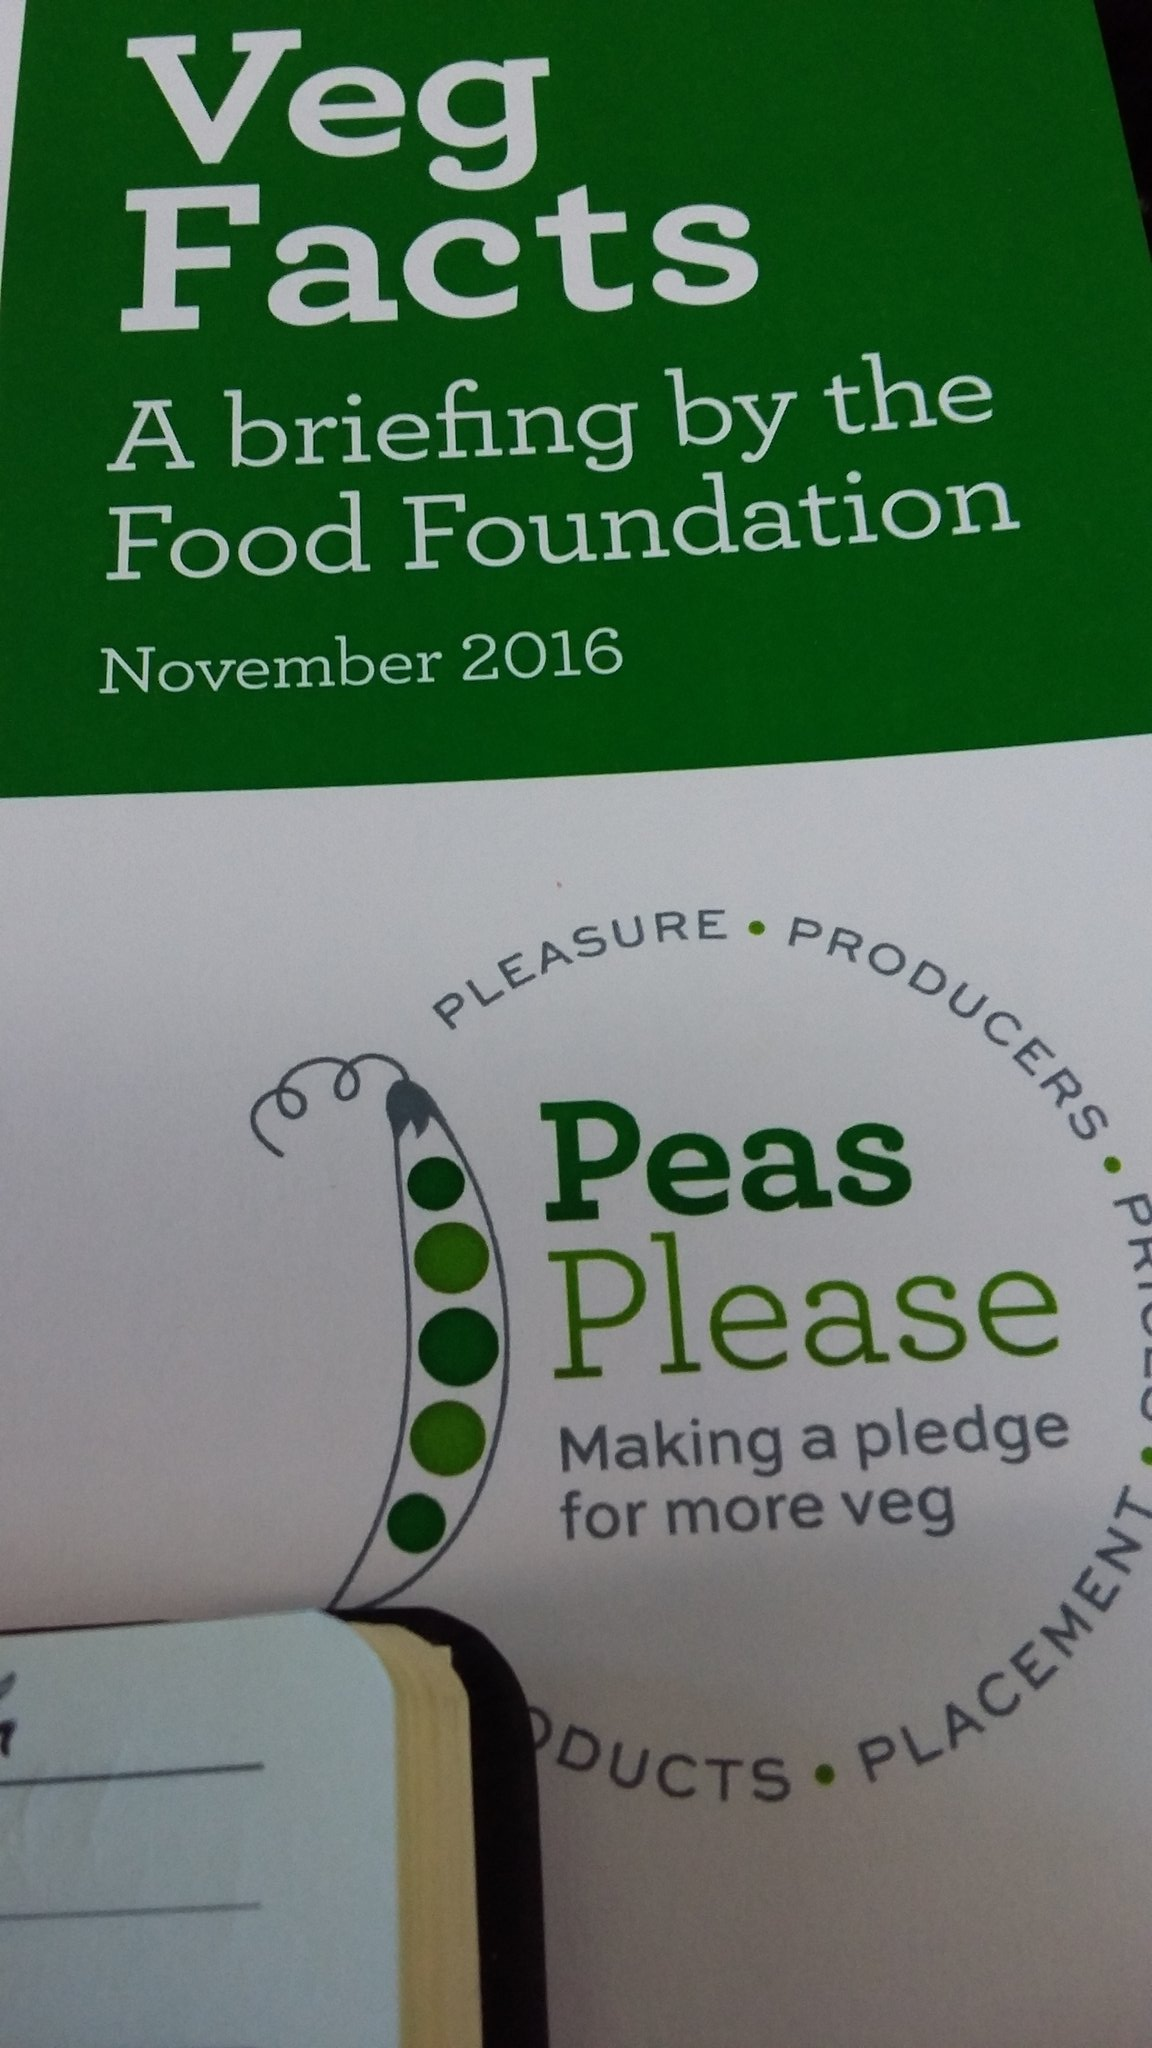 At @nourishscotland  #peasplease launch in Glasgow  with @SlowFoodWScot @slowfoodglasgow @SaosSupply @scotfooddrink @howardfarm .. more veg https://t.co/3ssUDqmzYU